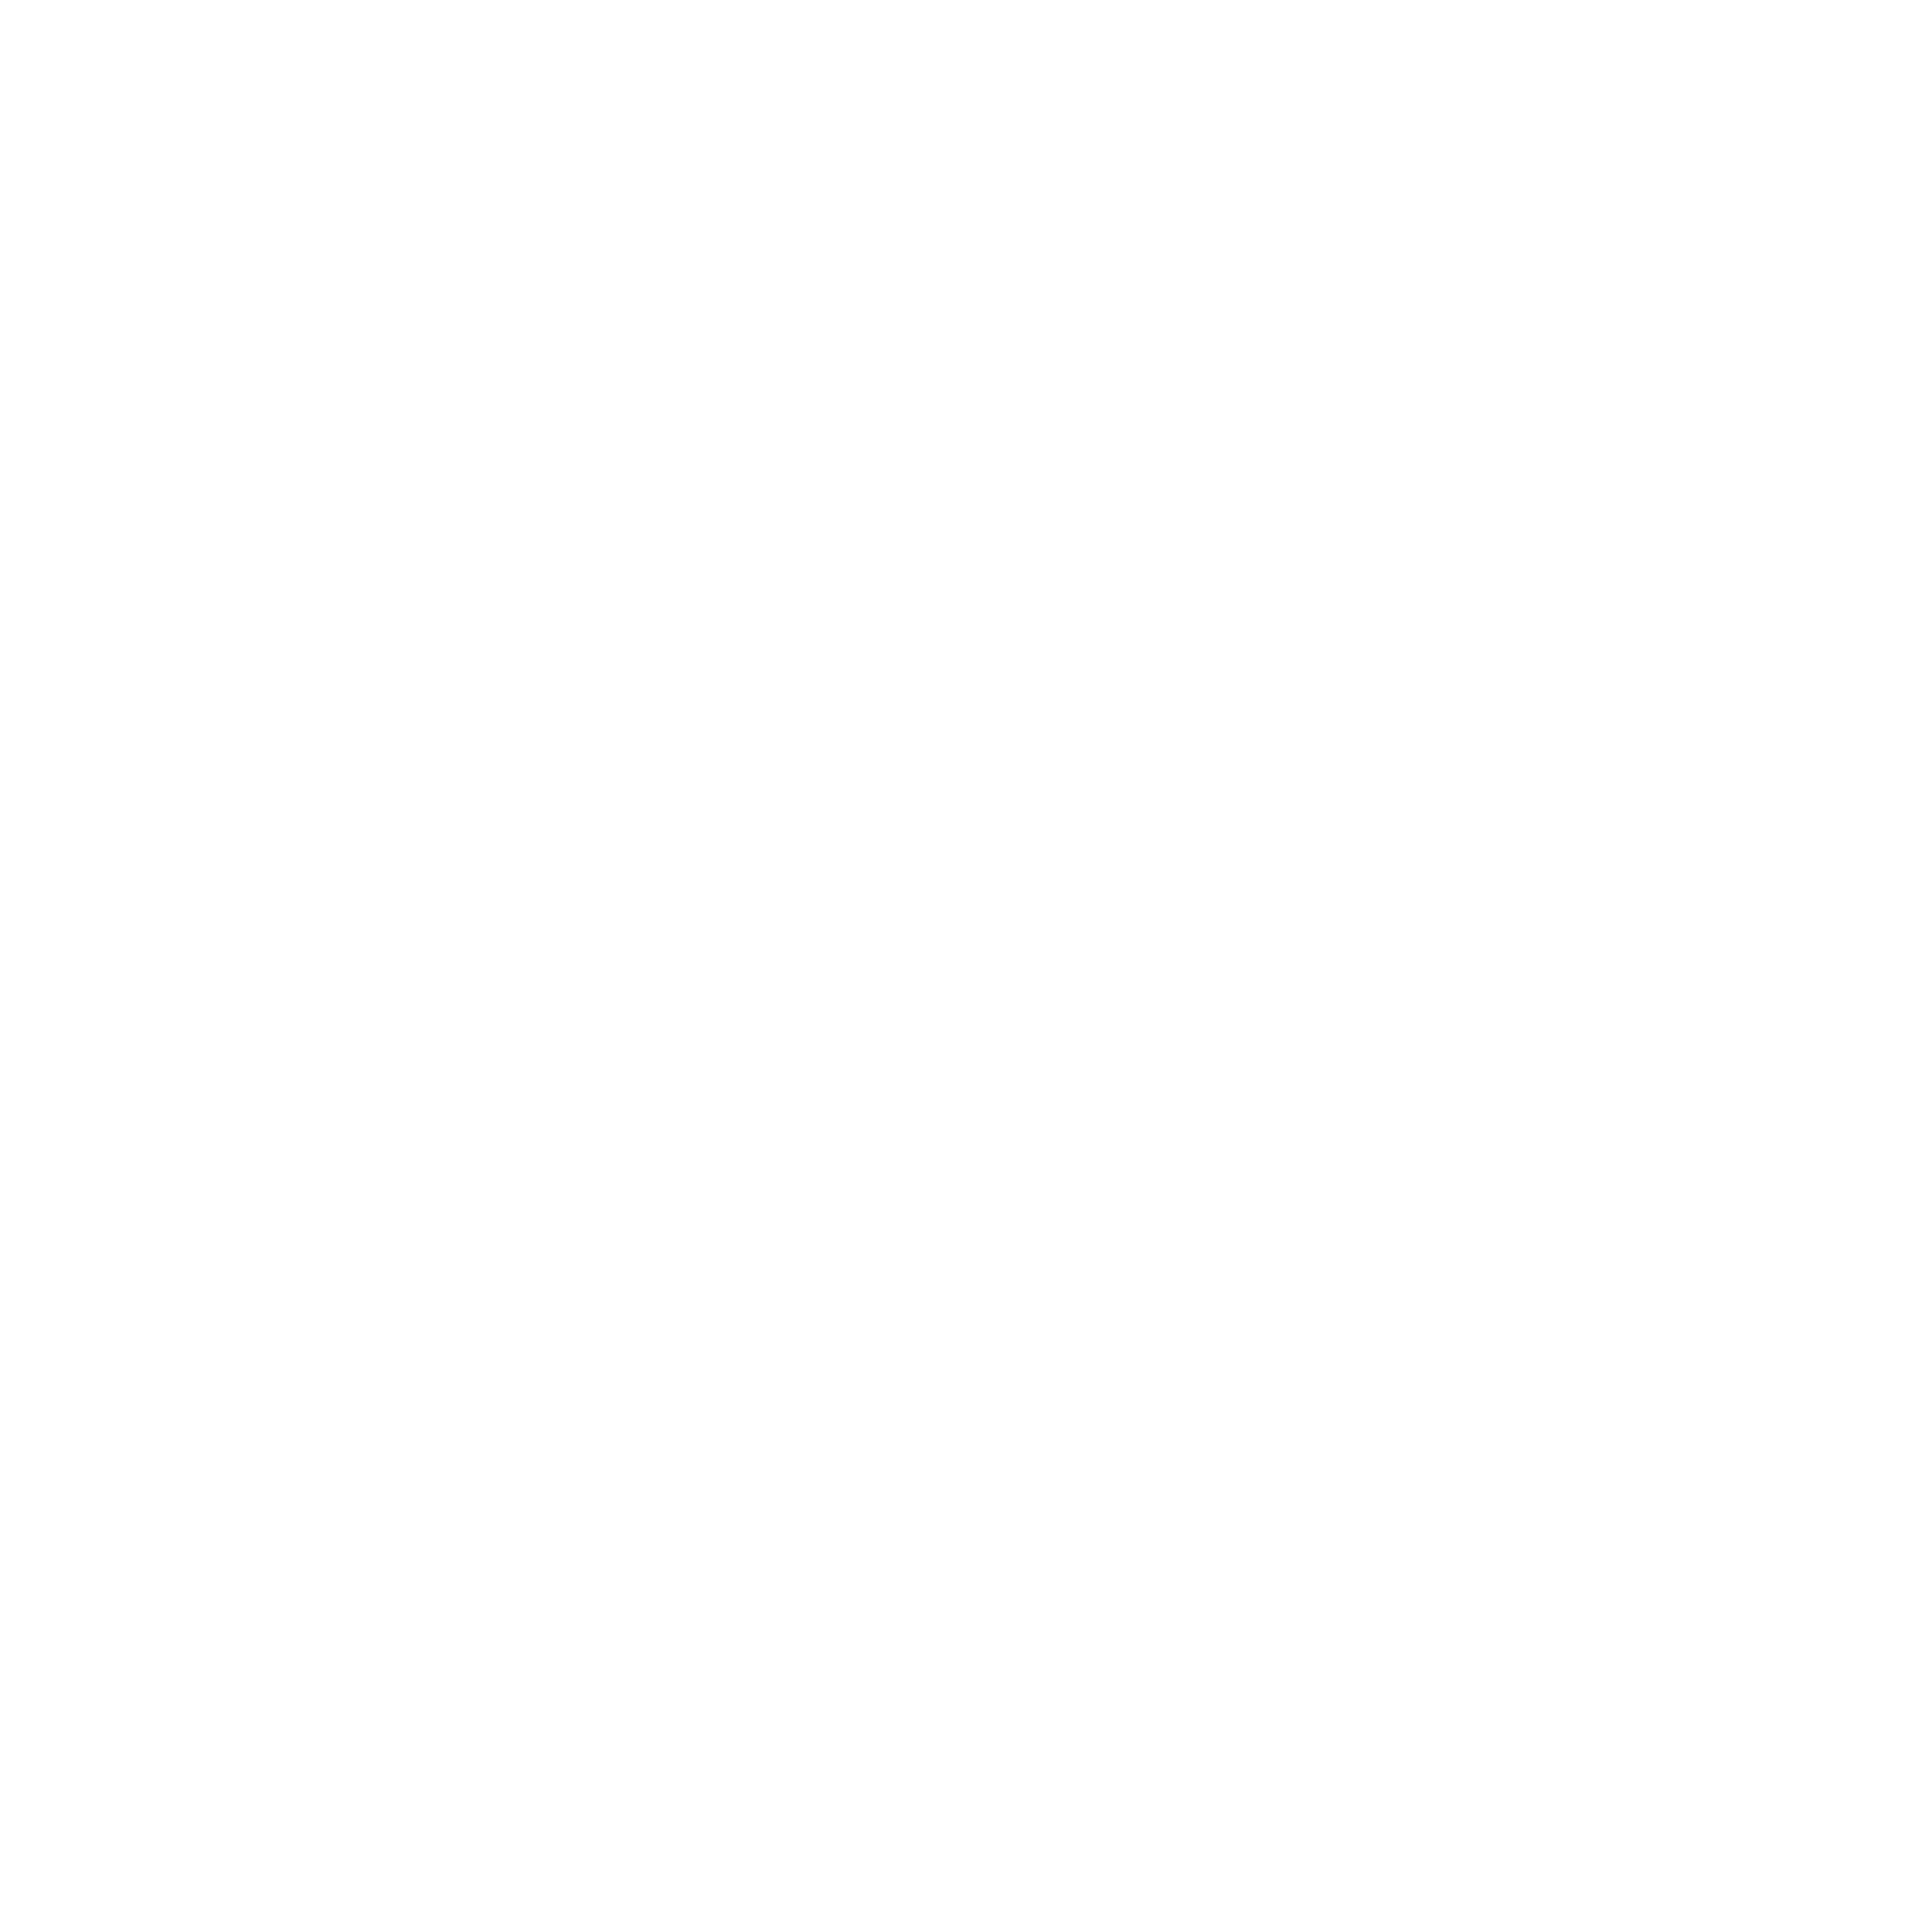 logo botalys black